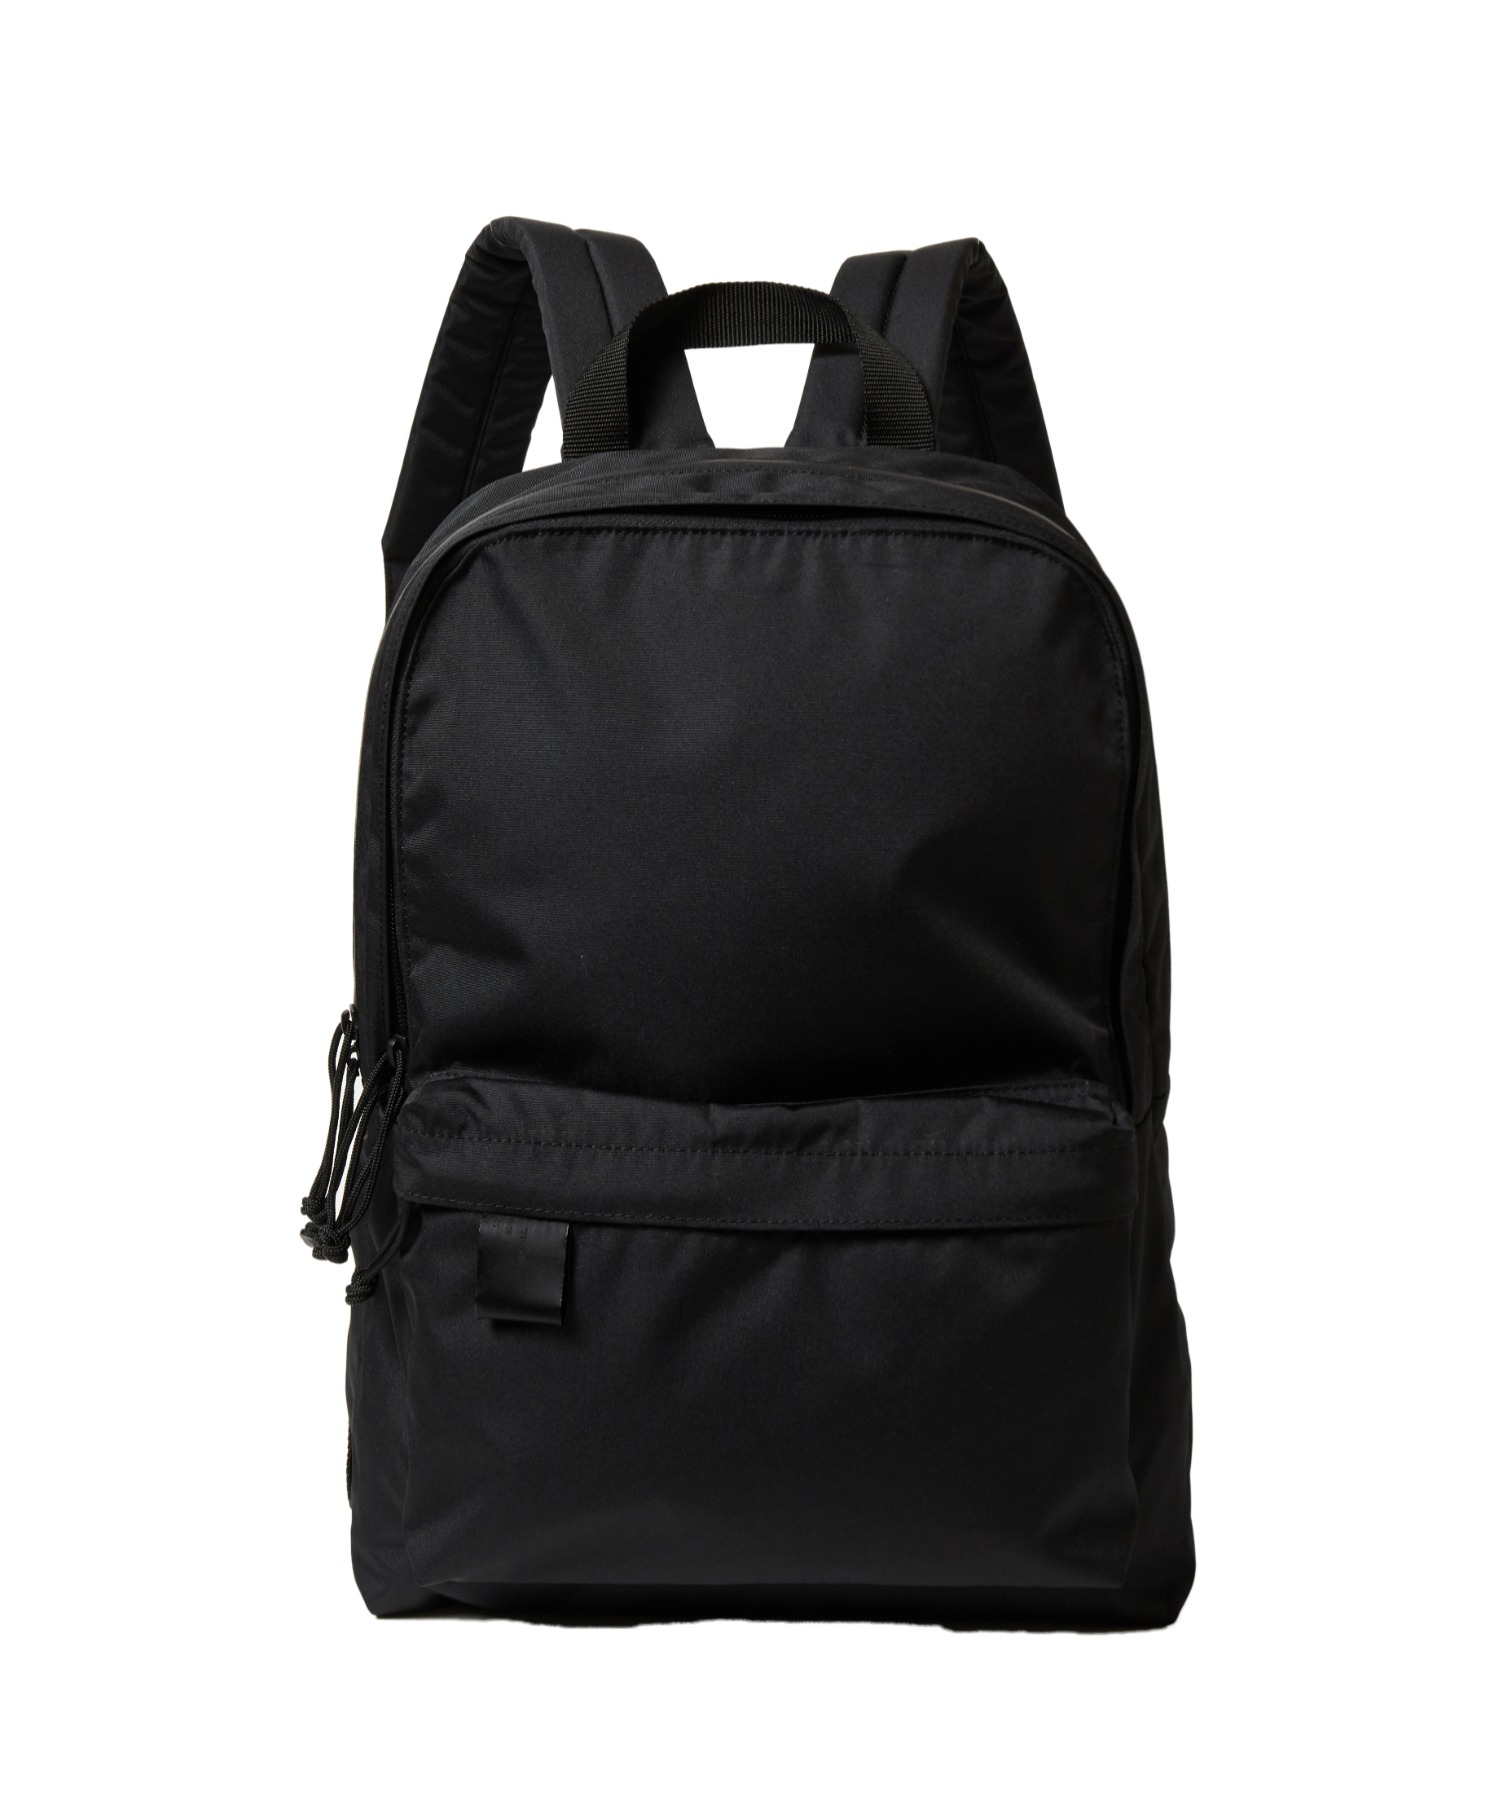 BACK PACK (SMALL) 【N.HOOLYWOOD COMPILE × PORTER】